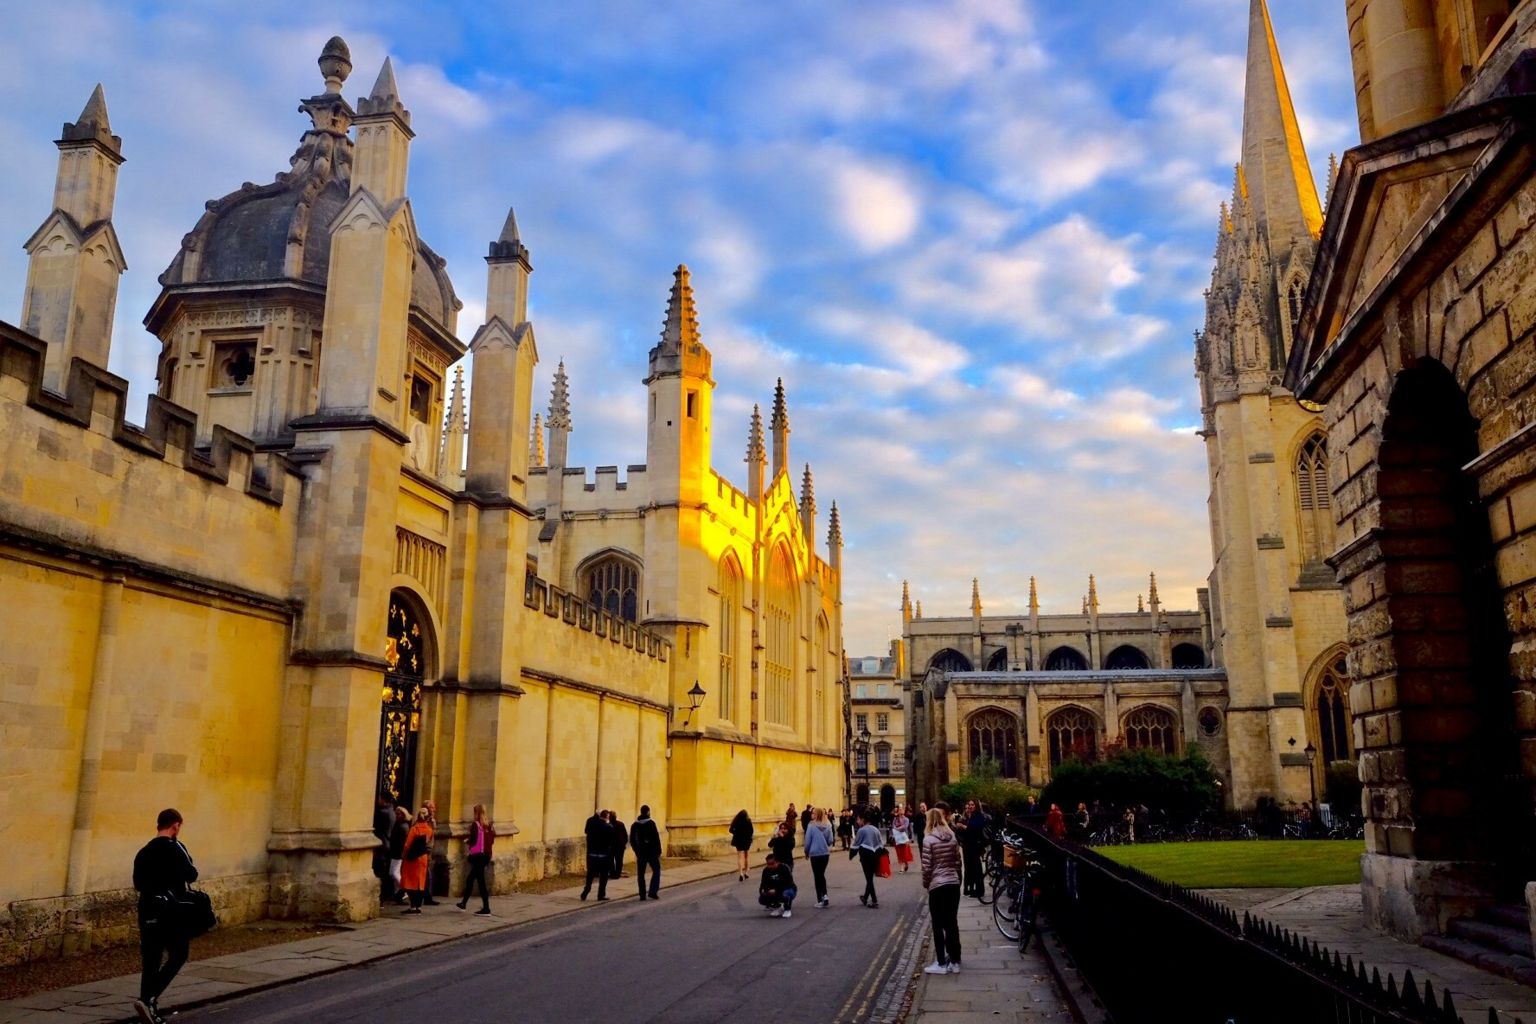 Oxford city centre by the Radcliffe Camera